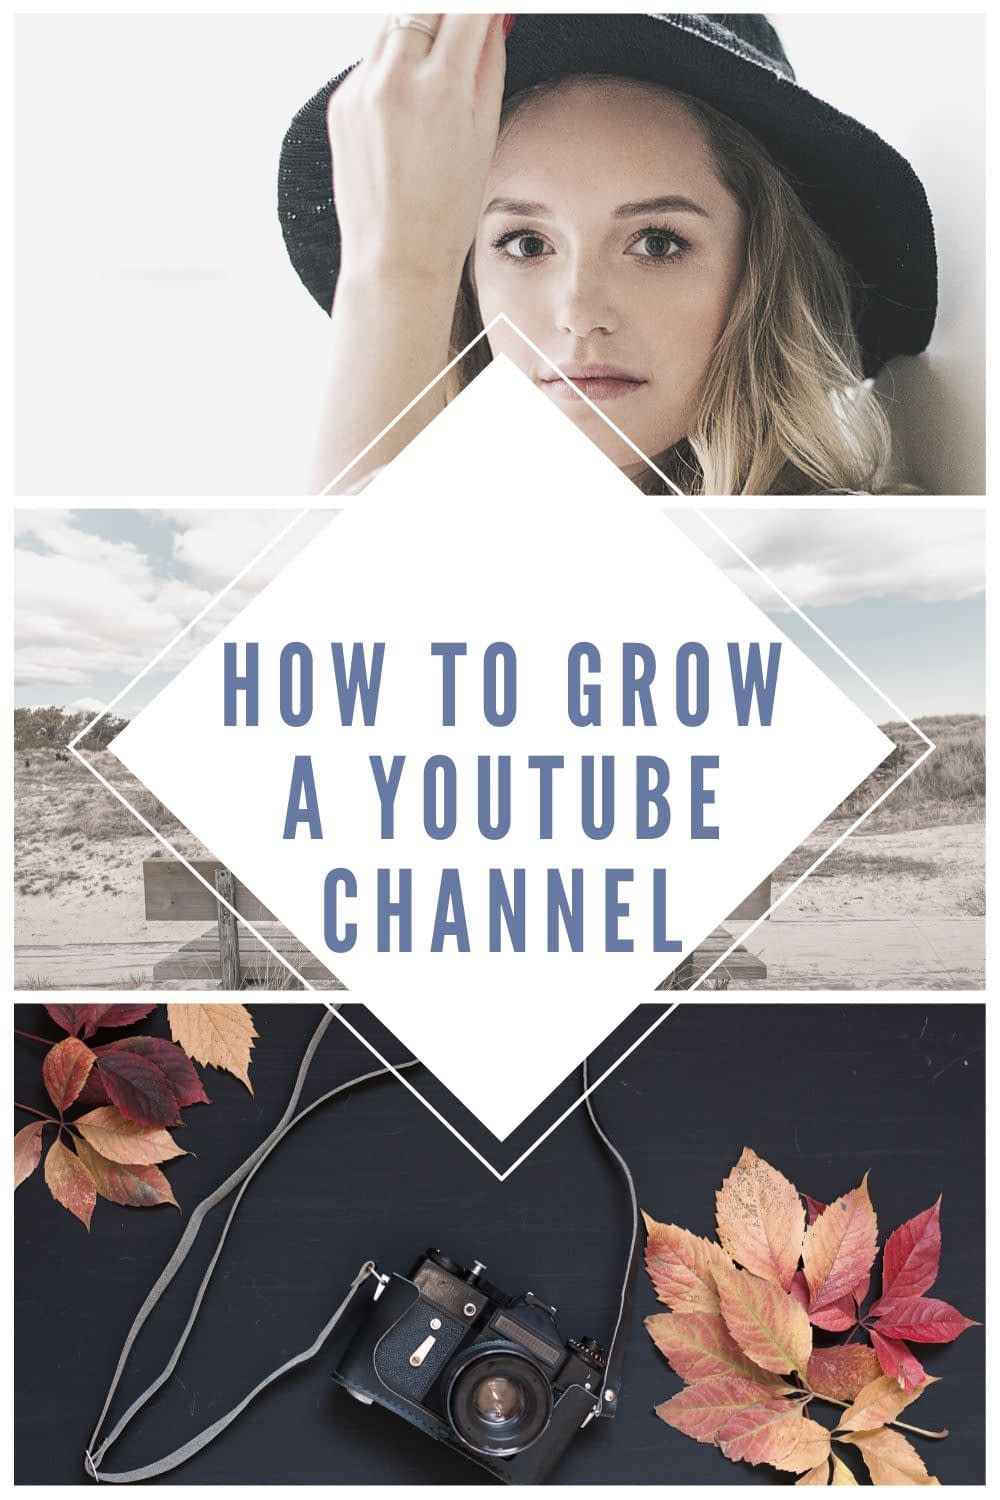 This guide will show you how to build, grow, and monetize a Youtube Channel.